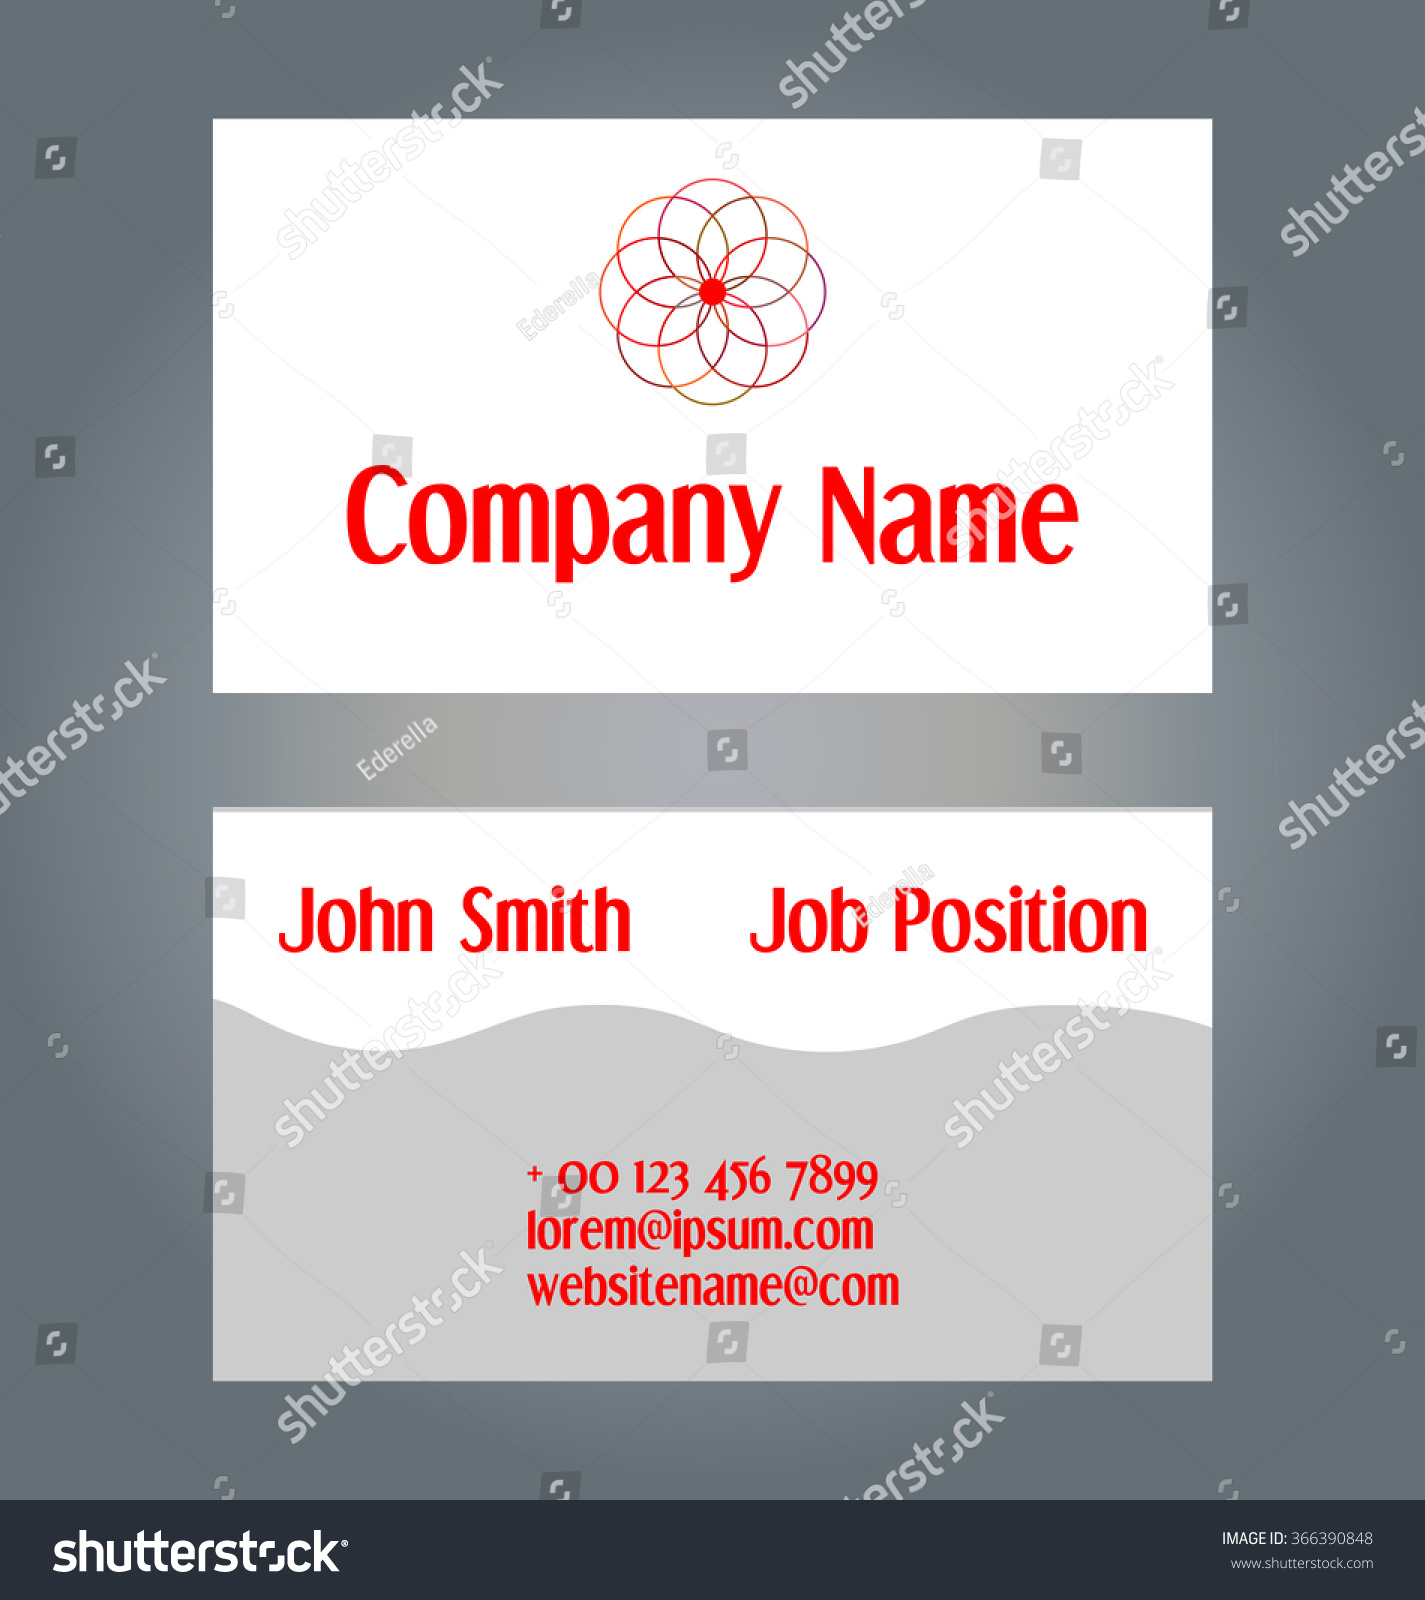 Two Sided Business Card Template Geometric Design Stock Vector (2018 ...